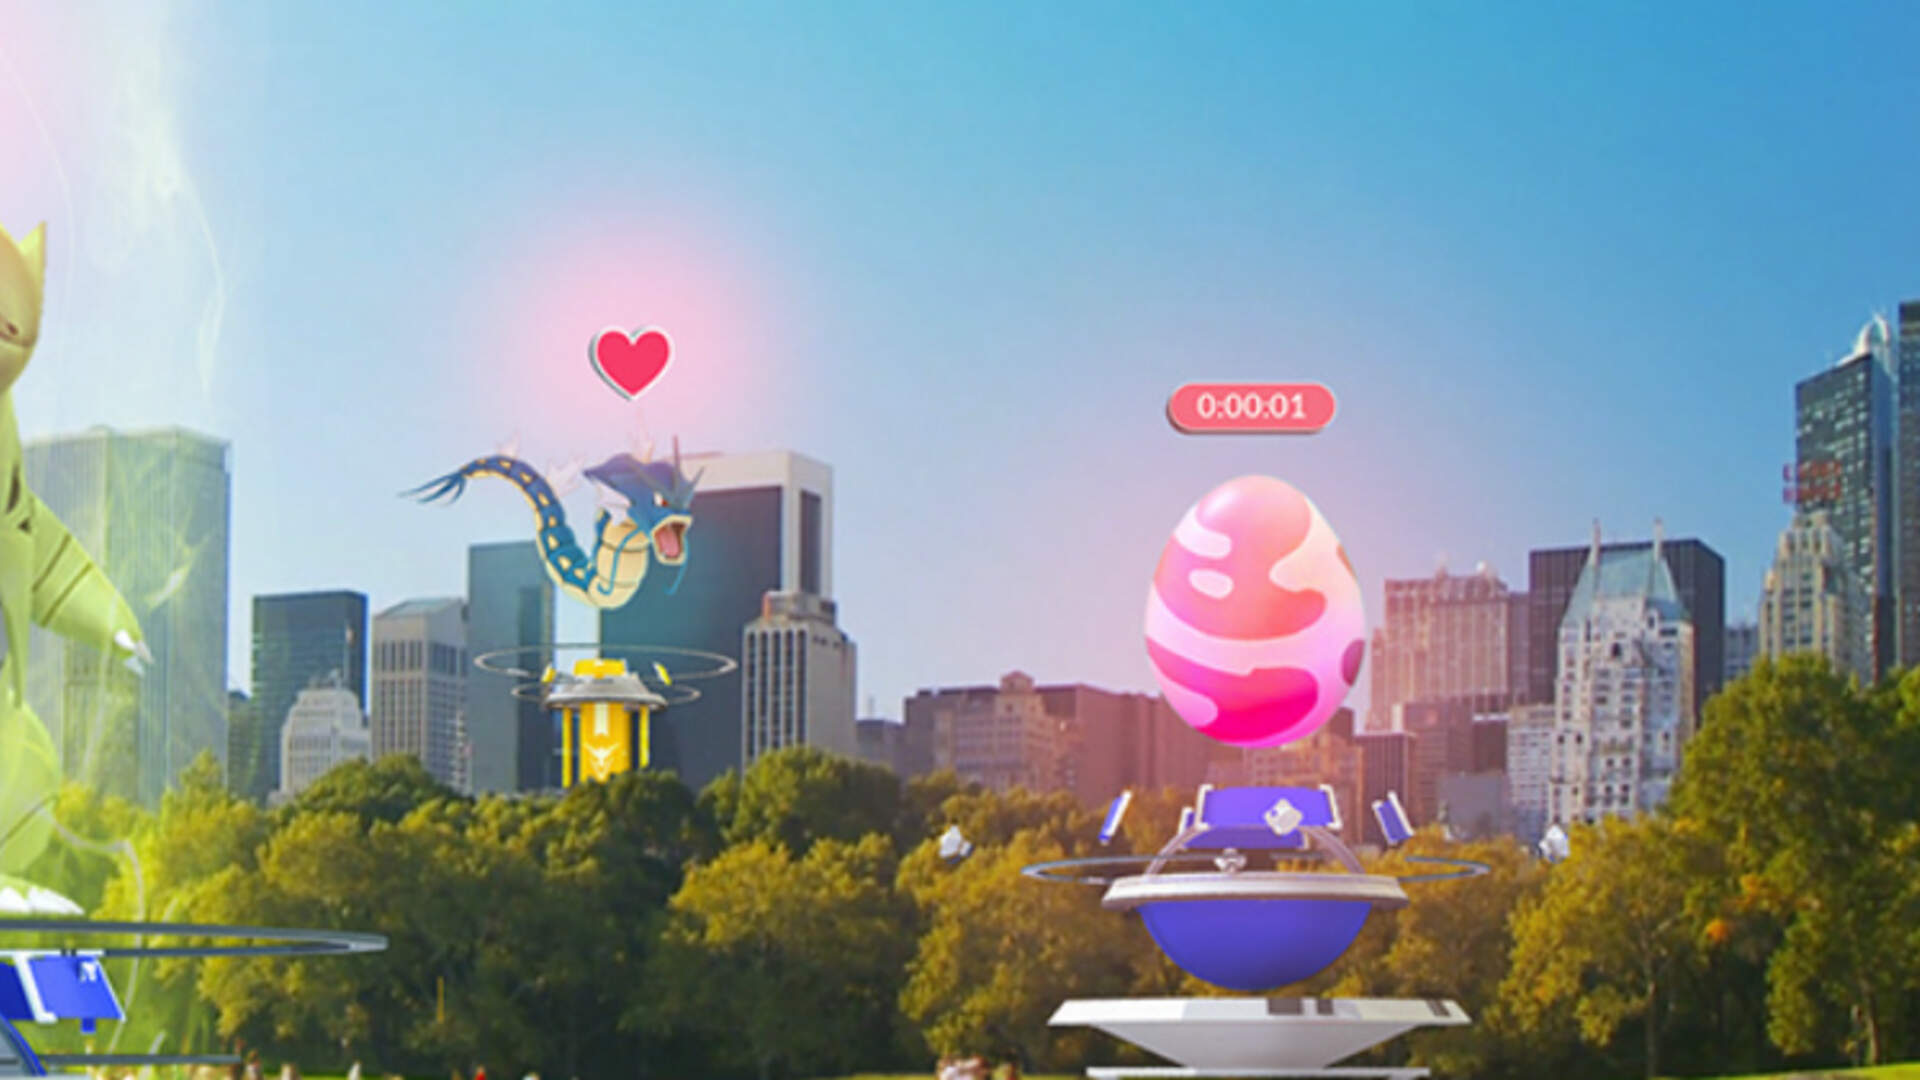 Pokemon Go Update Adds Raid Battles, Bringing More Social and Cooperative Play